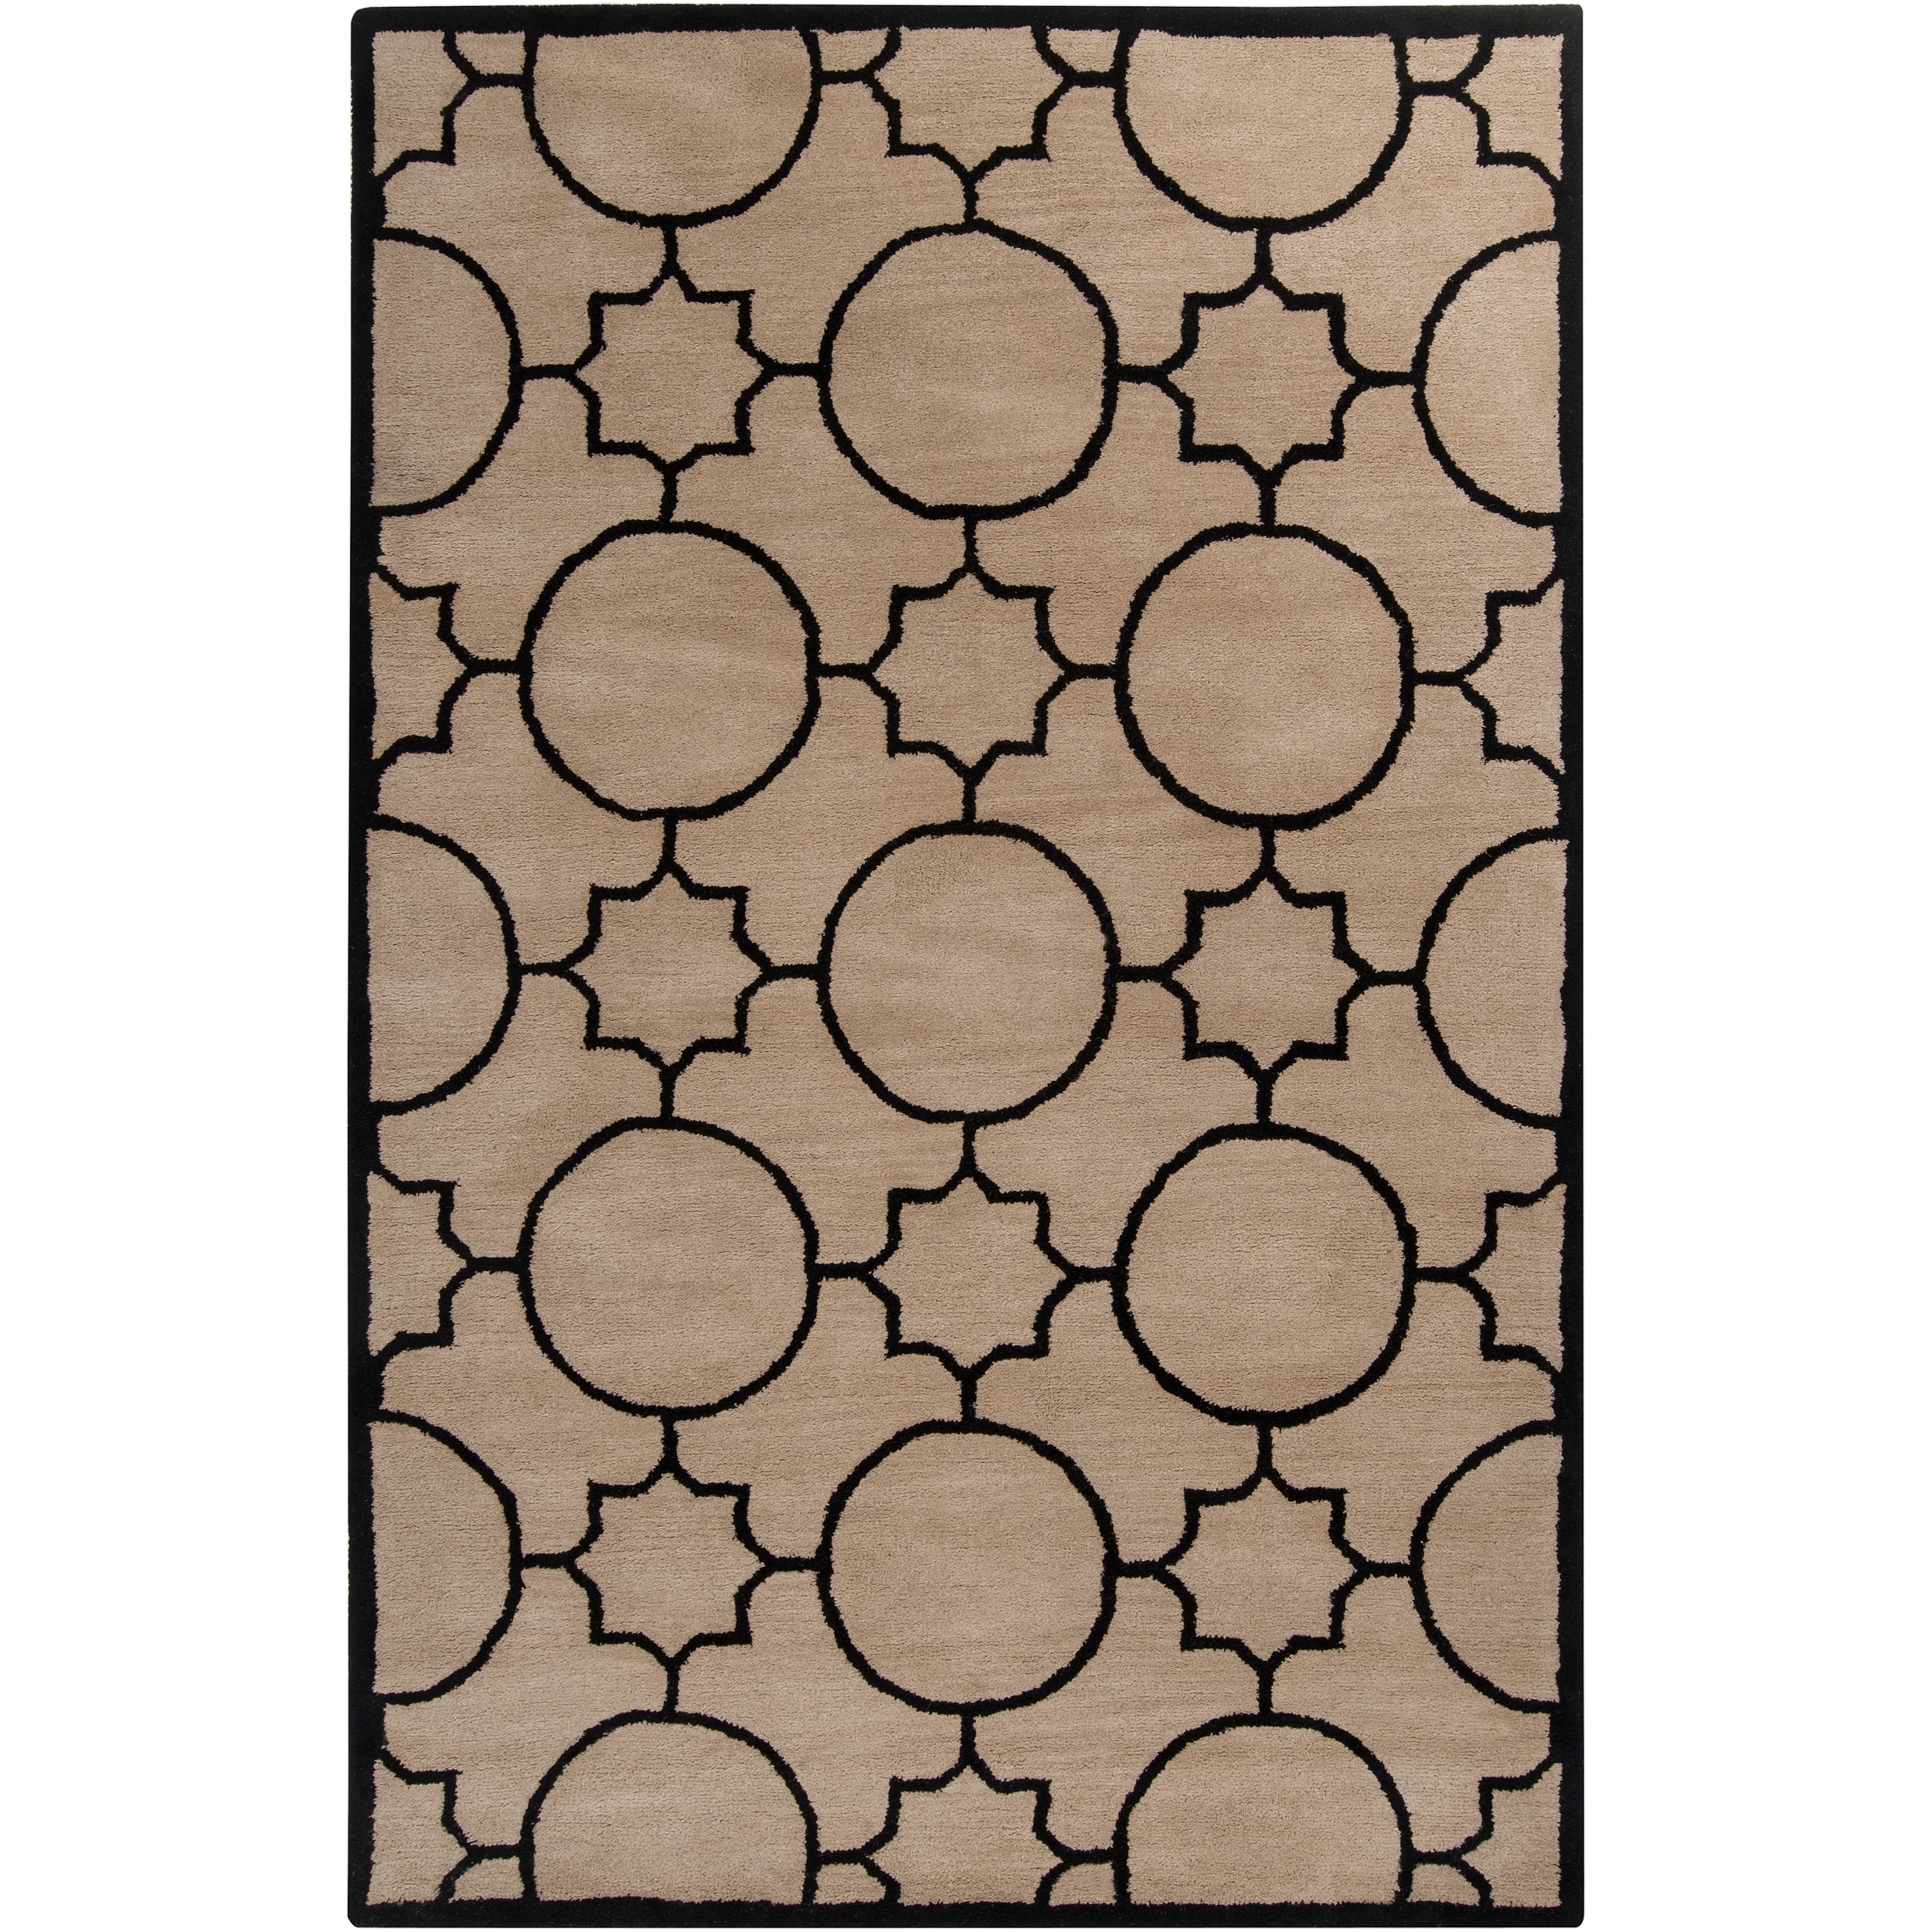 Hand-tufted Oscar Black Wool Area Rug - 8' x 10'